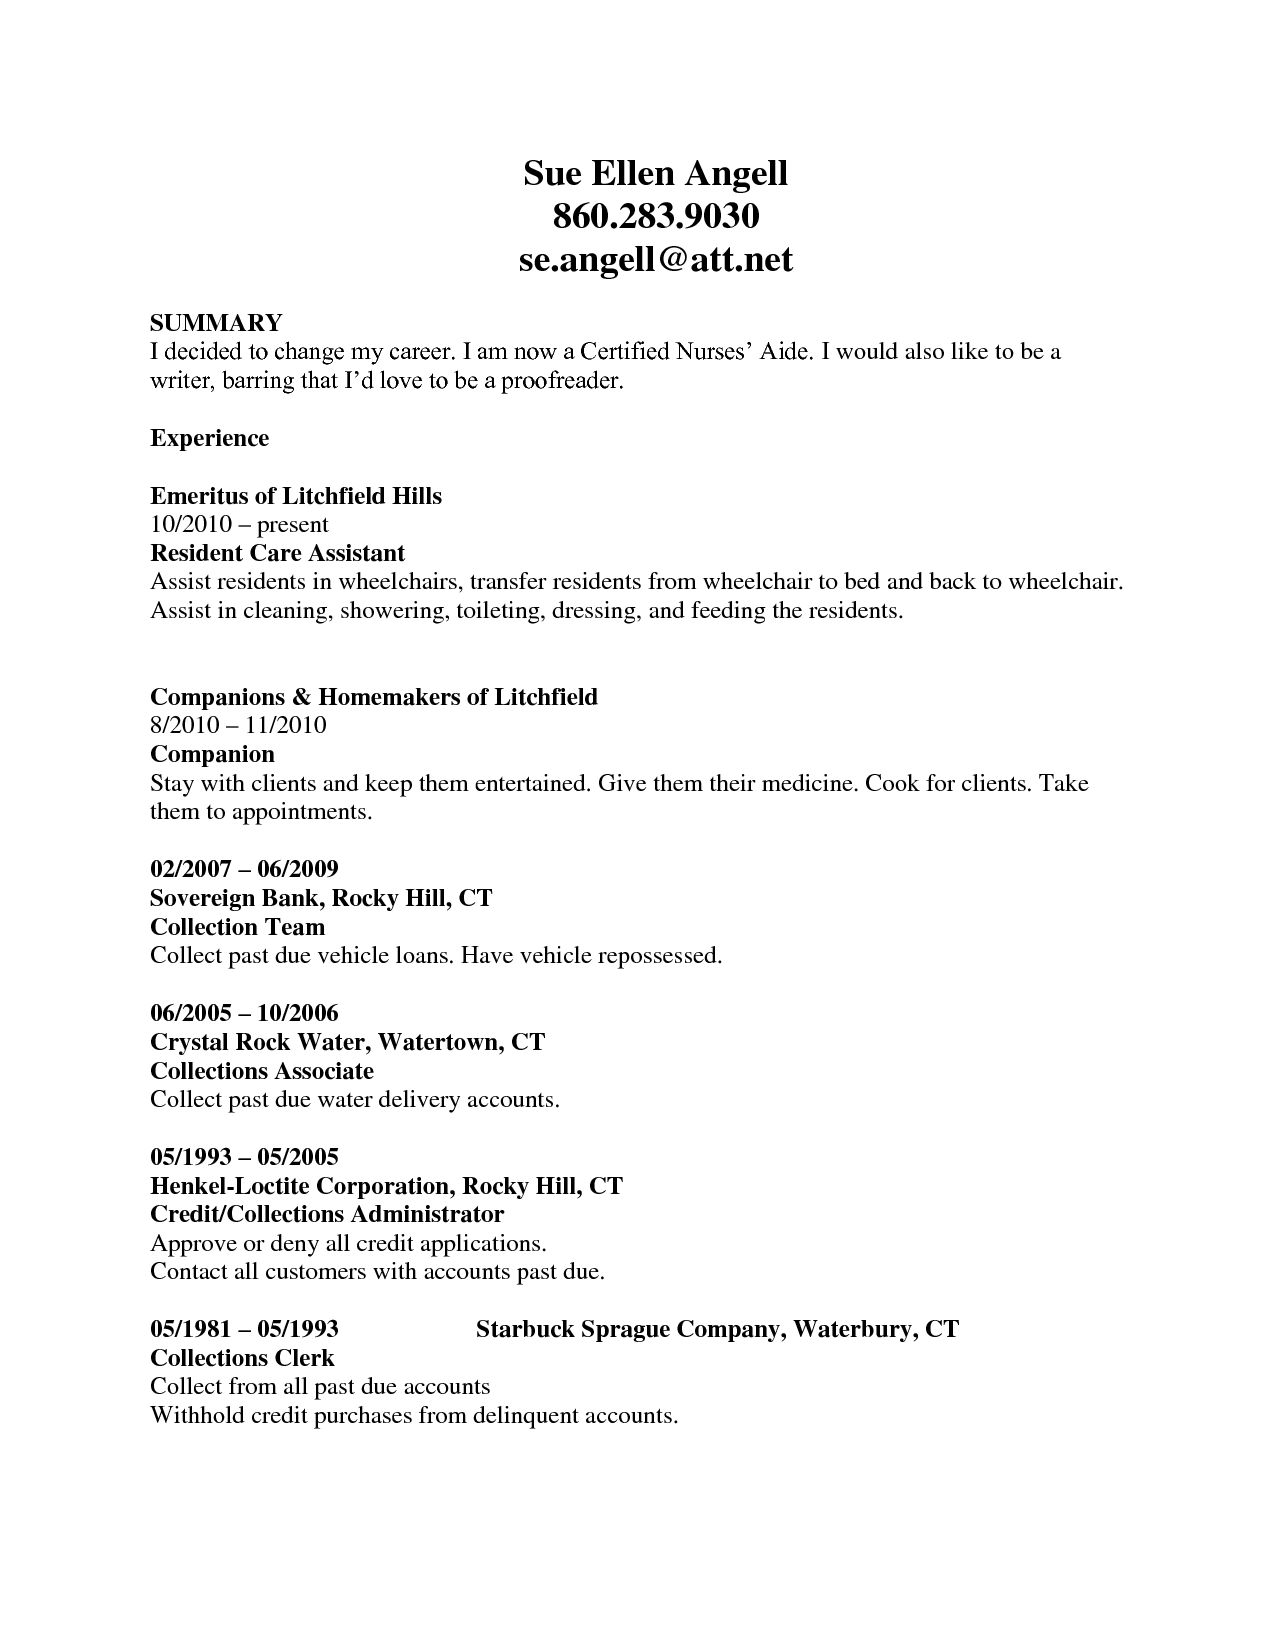 Example Resumes Writing A Winning Cna Resume Examples And Skills For Cnas